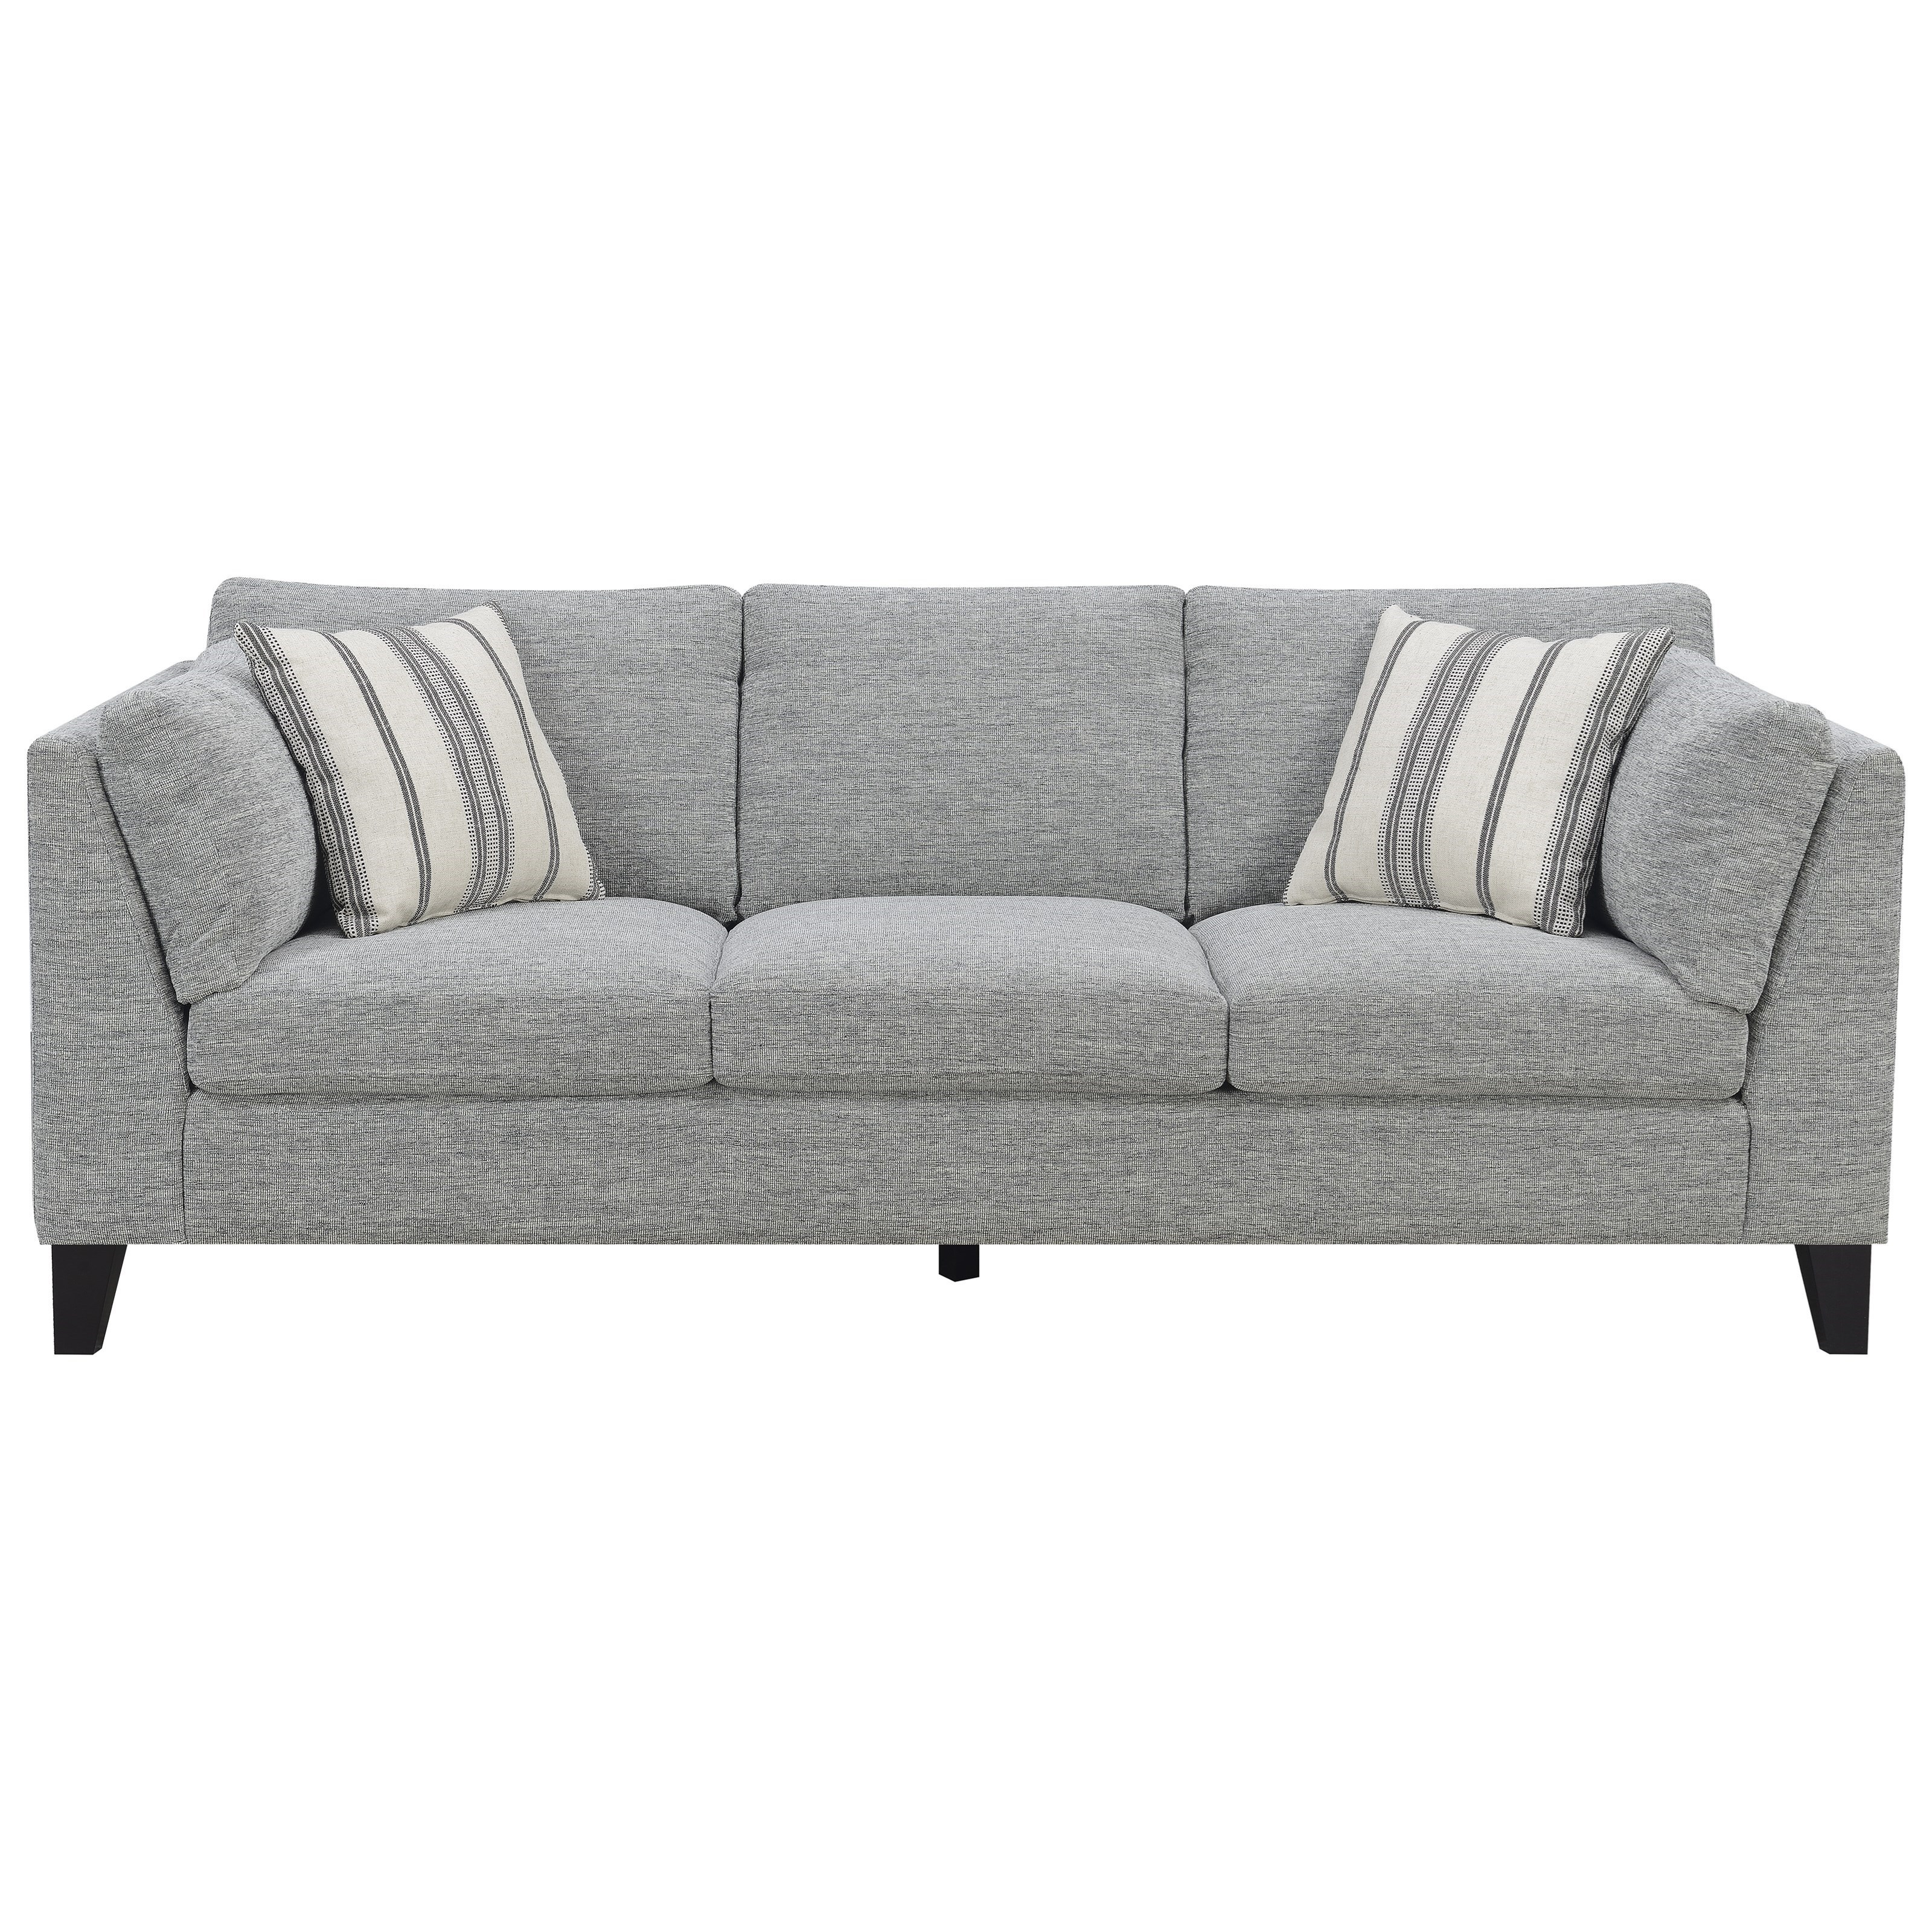 Elsbury Sofa with 4 Accent Pillows by Emerald at Northeast Factory Direct